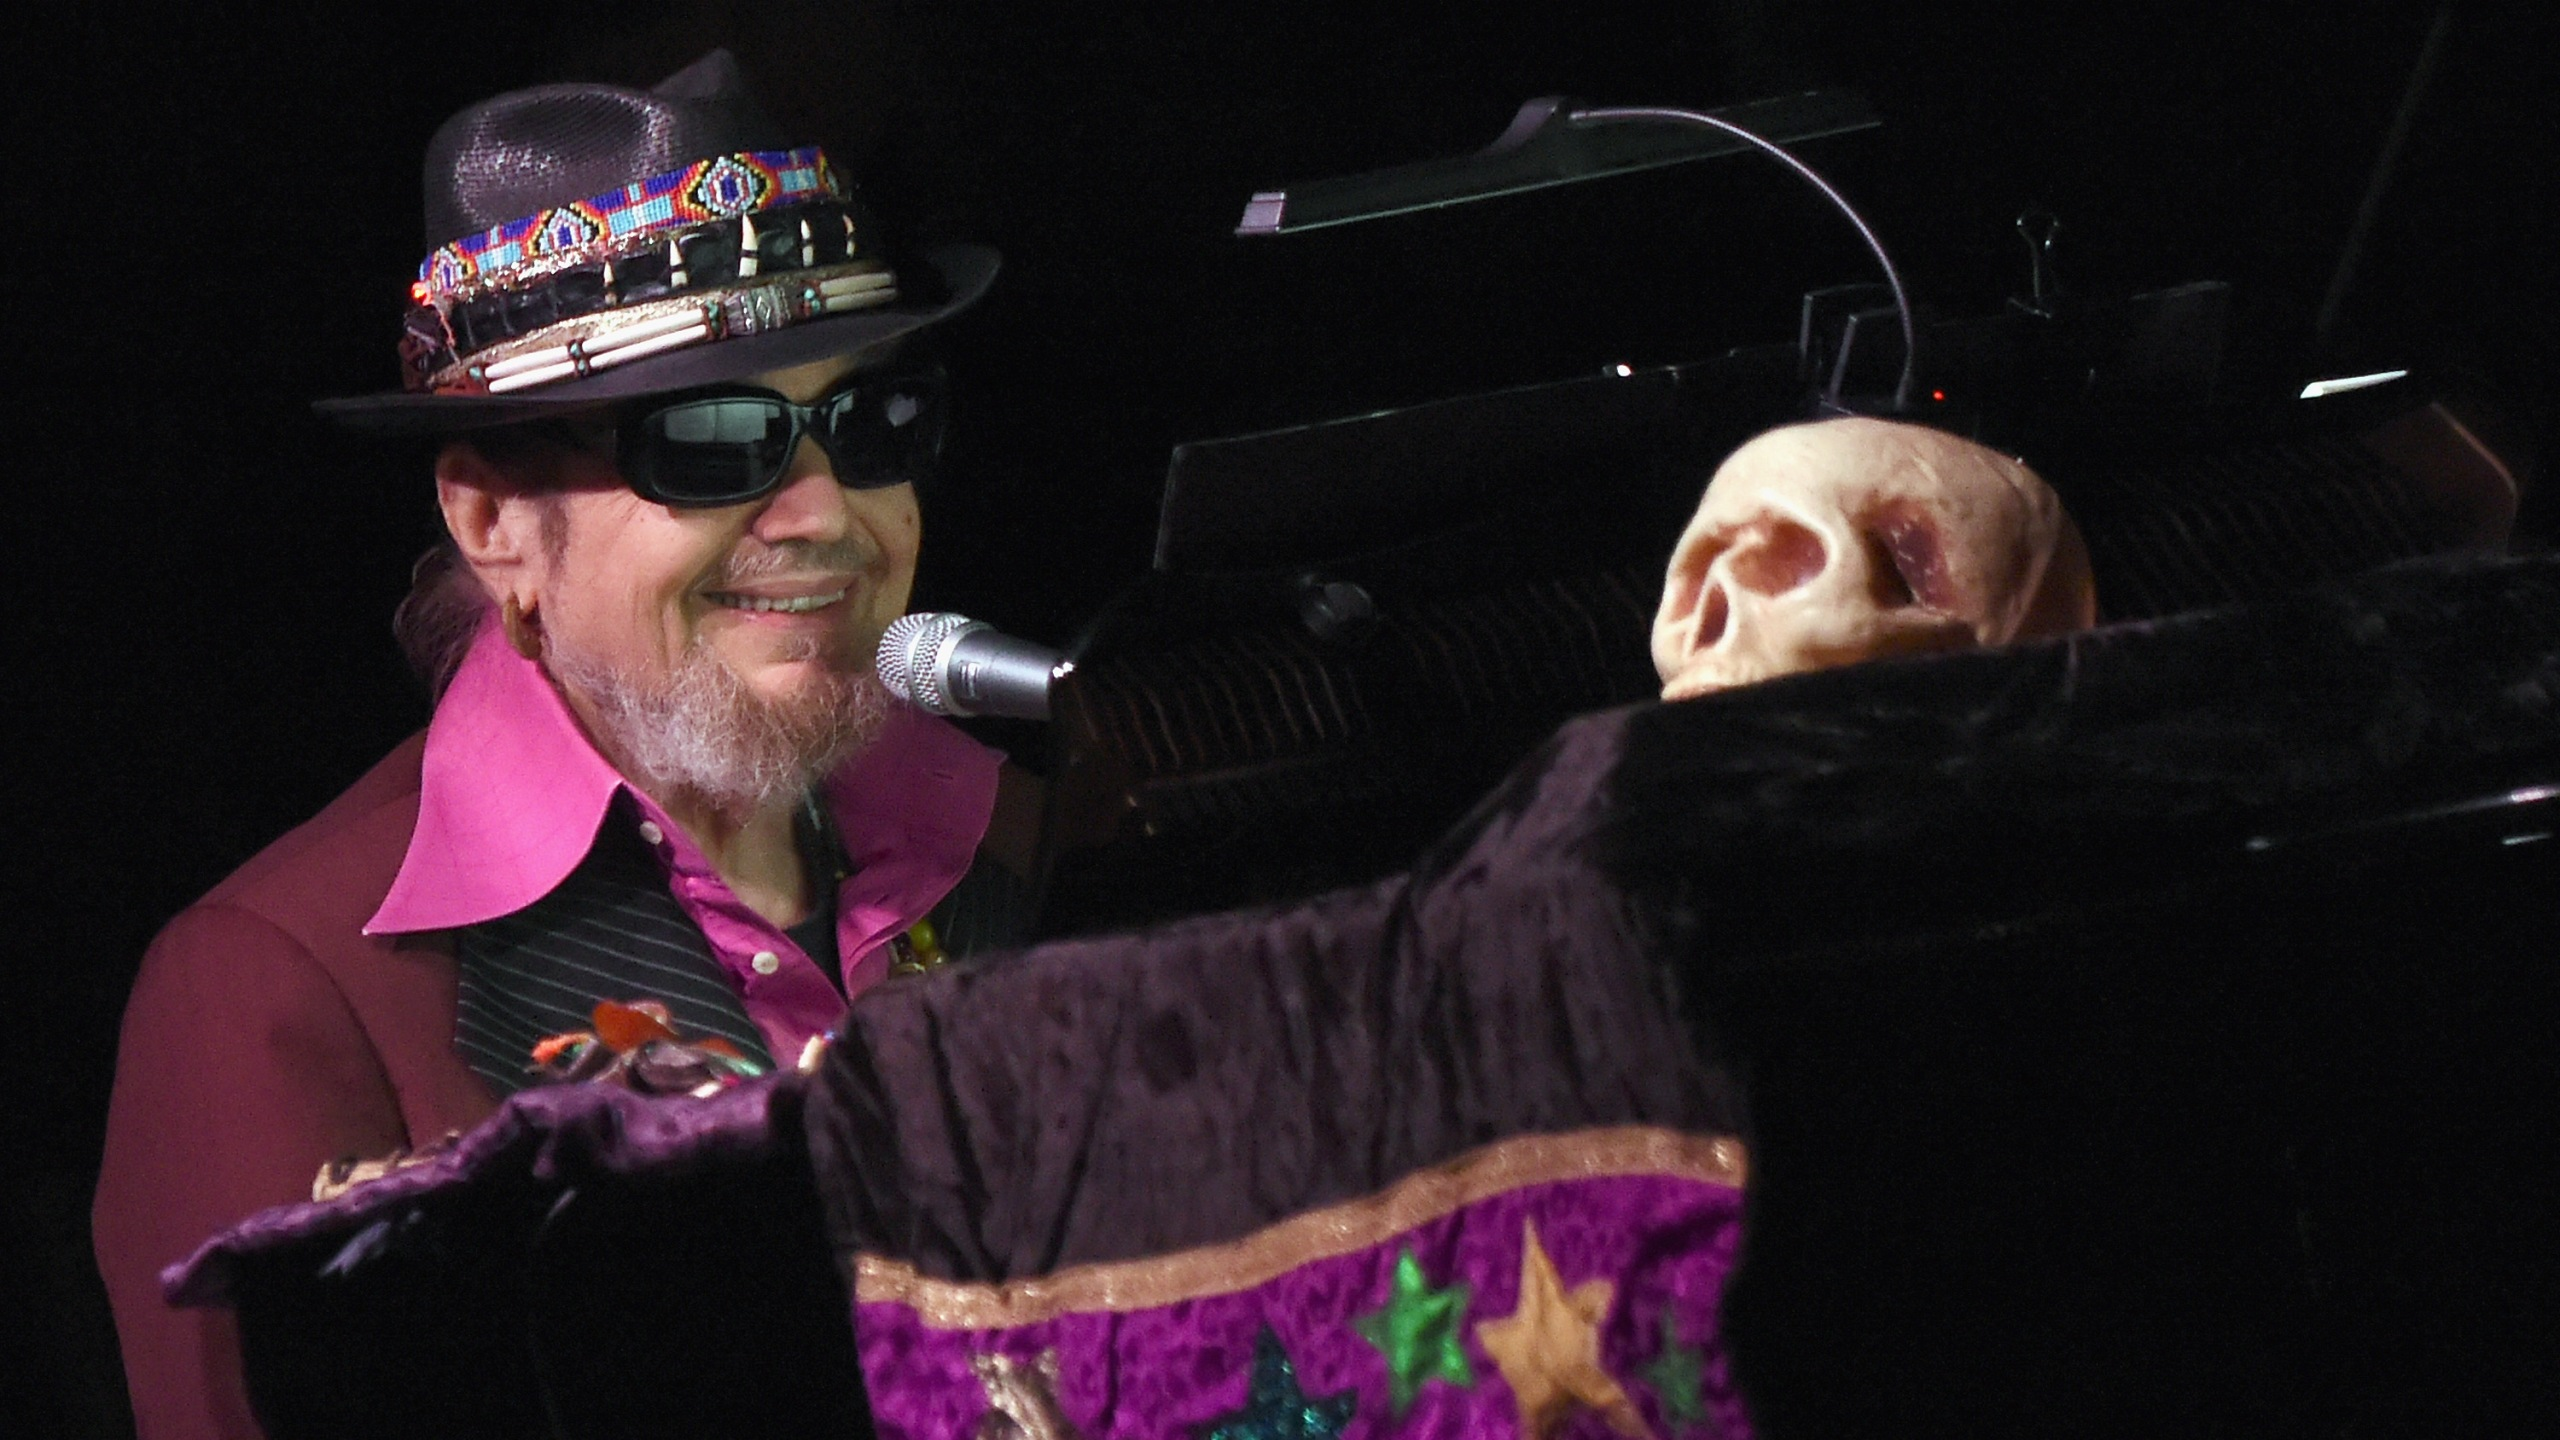 Dr. John performs on Mardi Gras at City Winery Nashville on Feb 9, 2016. (Credit: Rick Diamond / Getty Images)